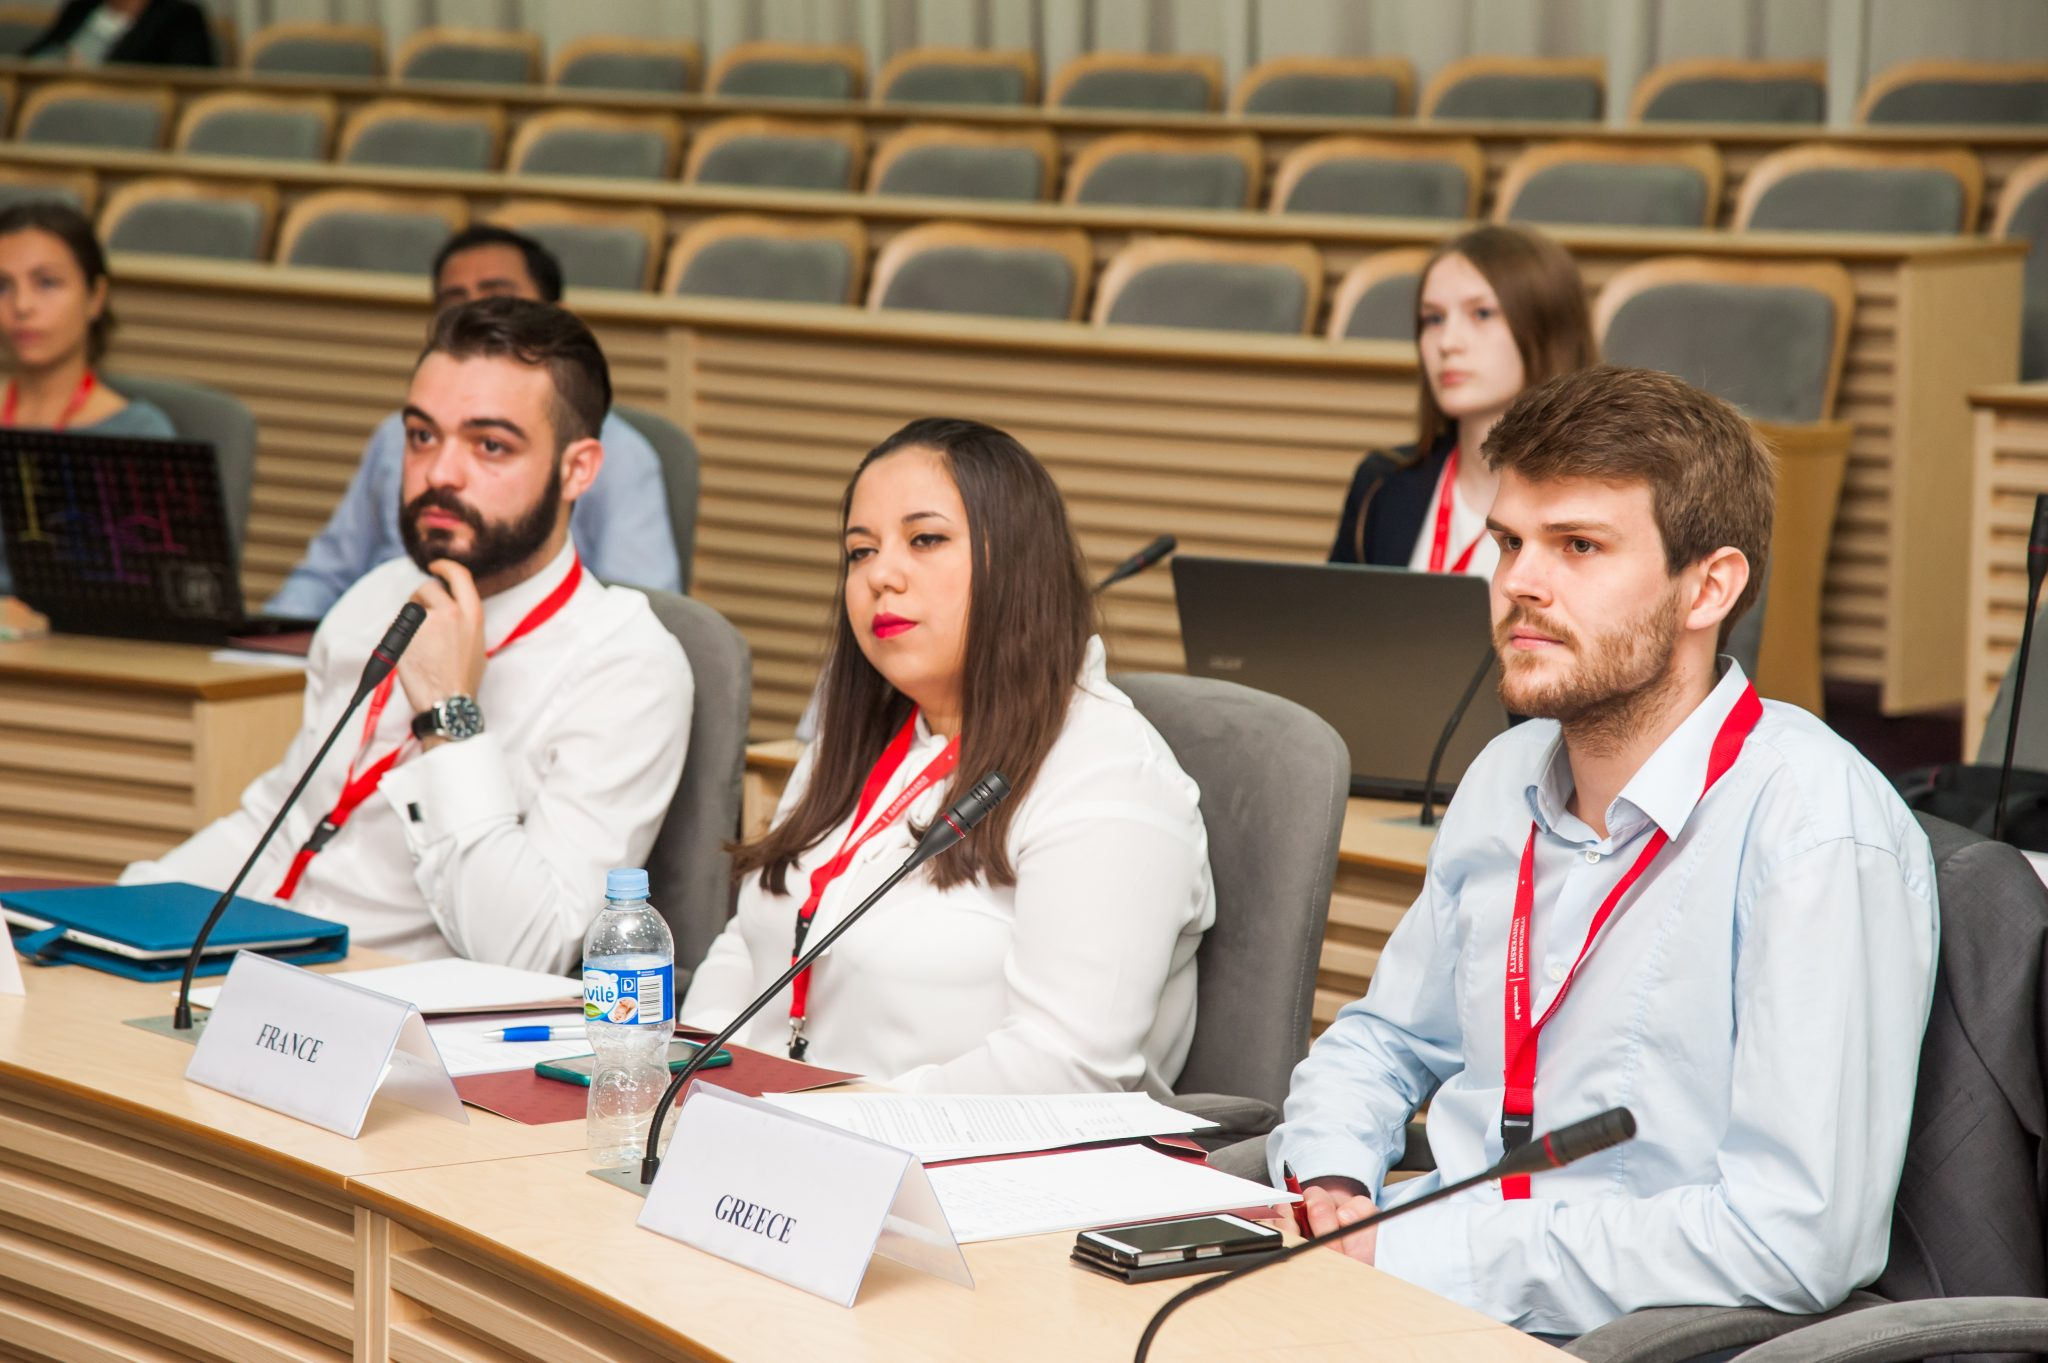 Conference To Review Impact Of Globalization On Culture Vdu